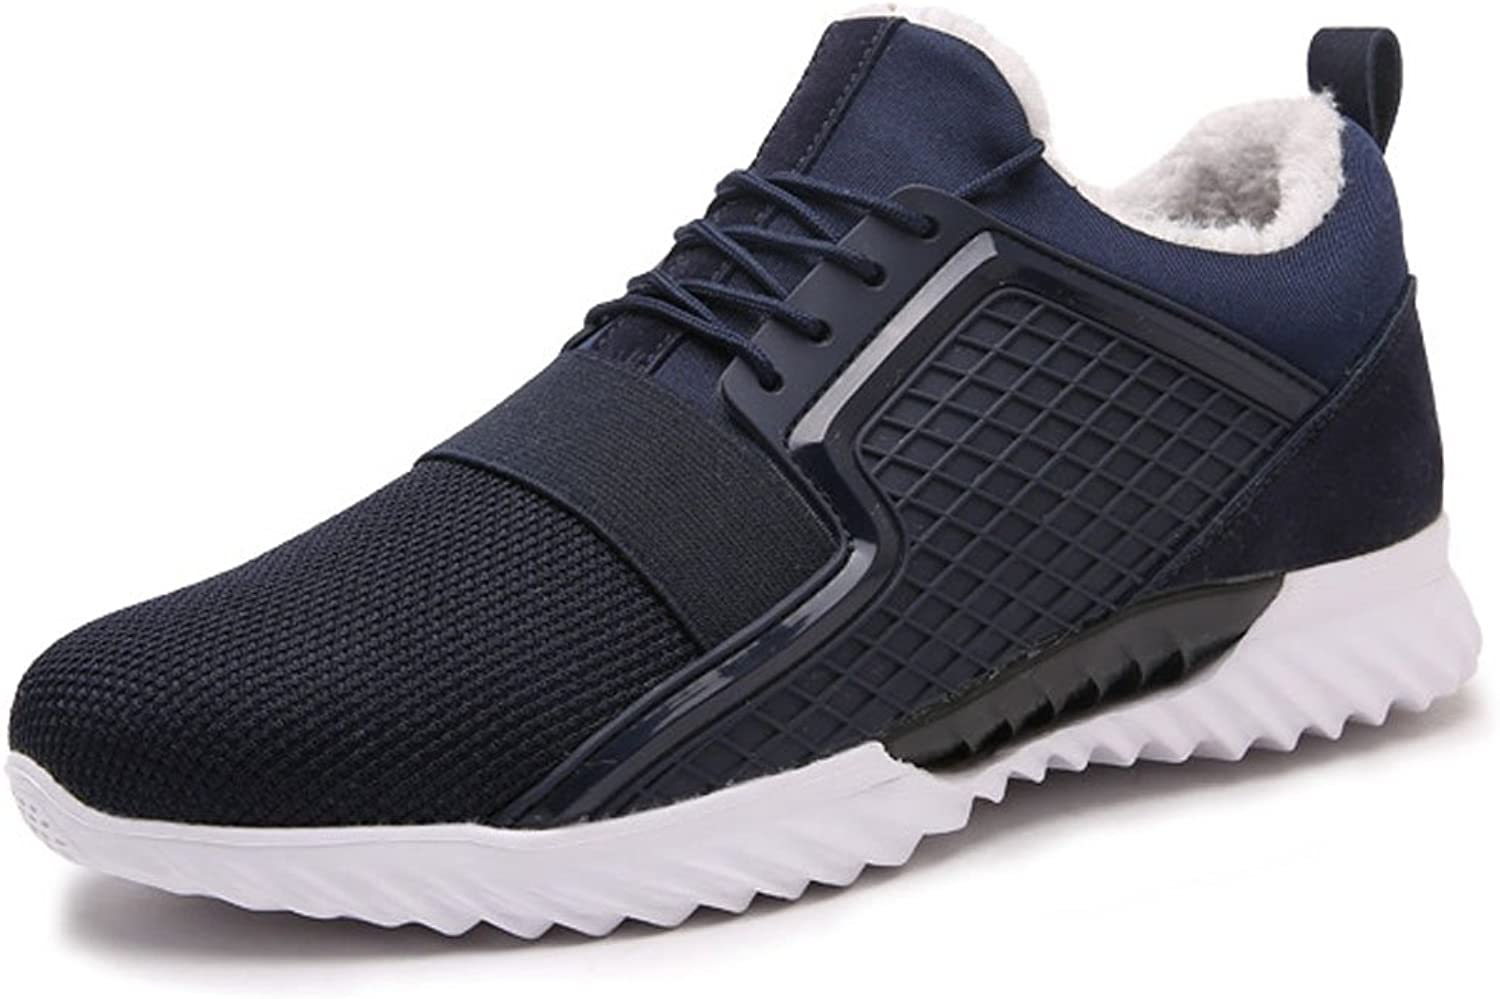 TYPOST Men's Winter Warm Sneakers Fashion Casual Non Slip Running Sports shoes